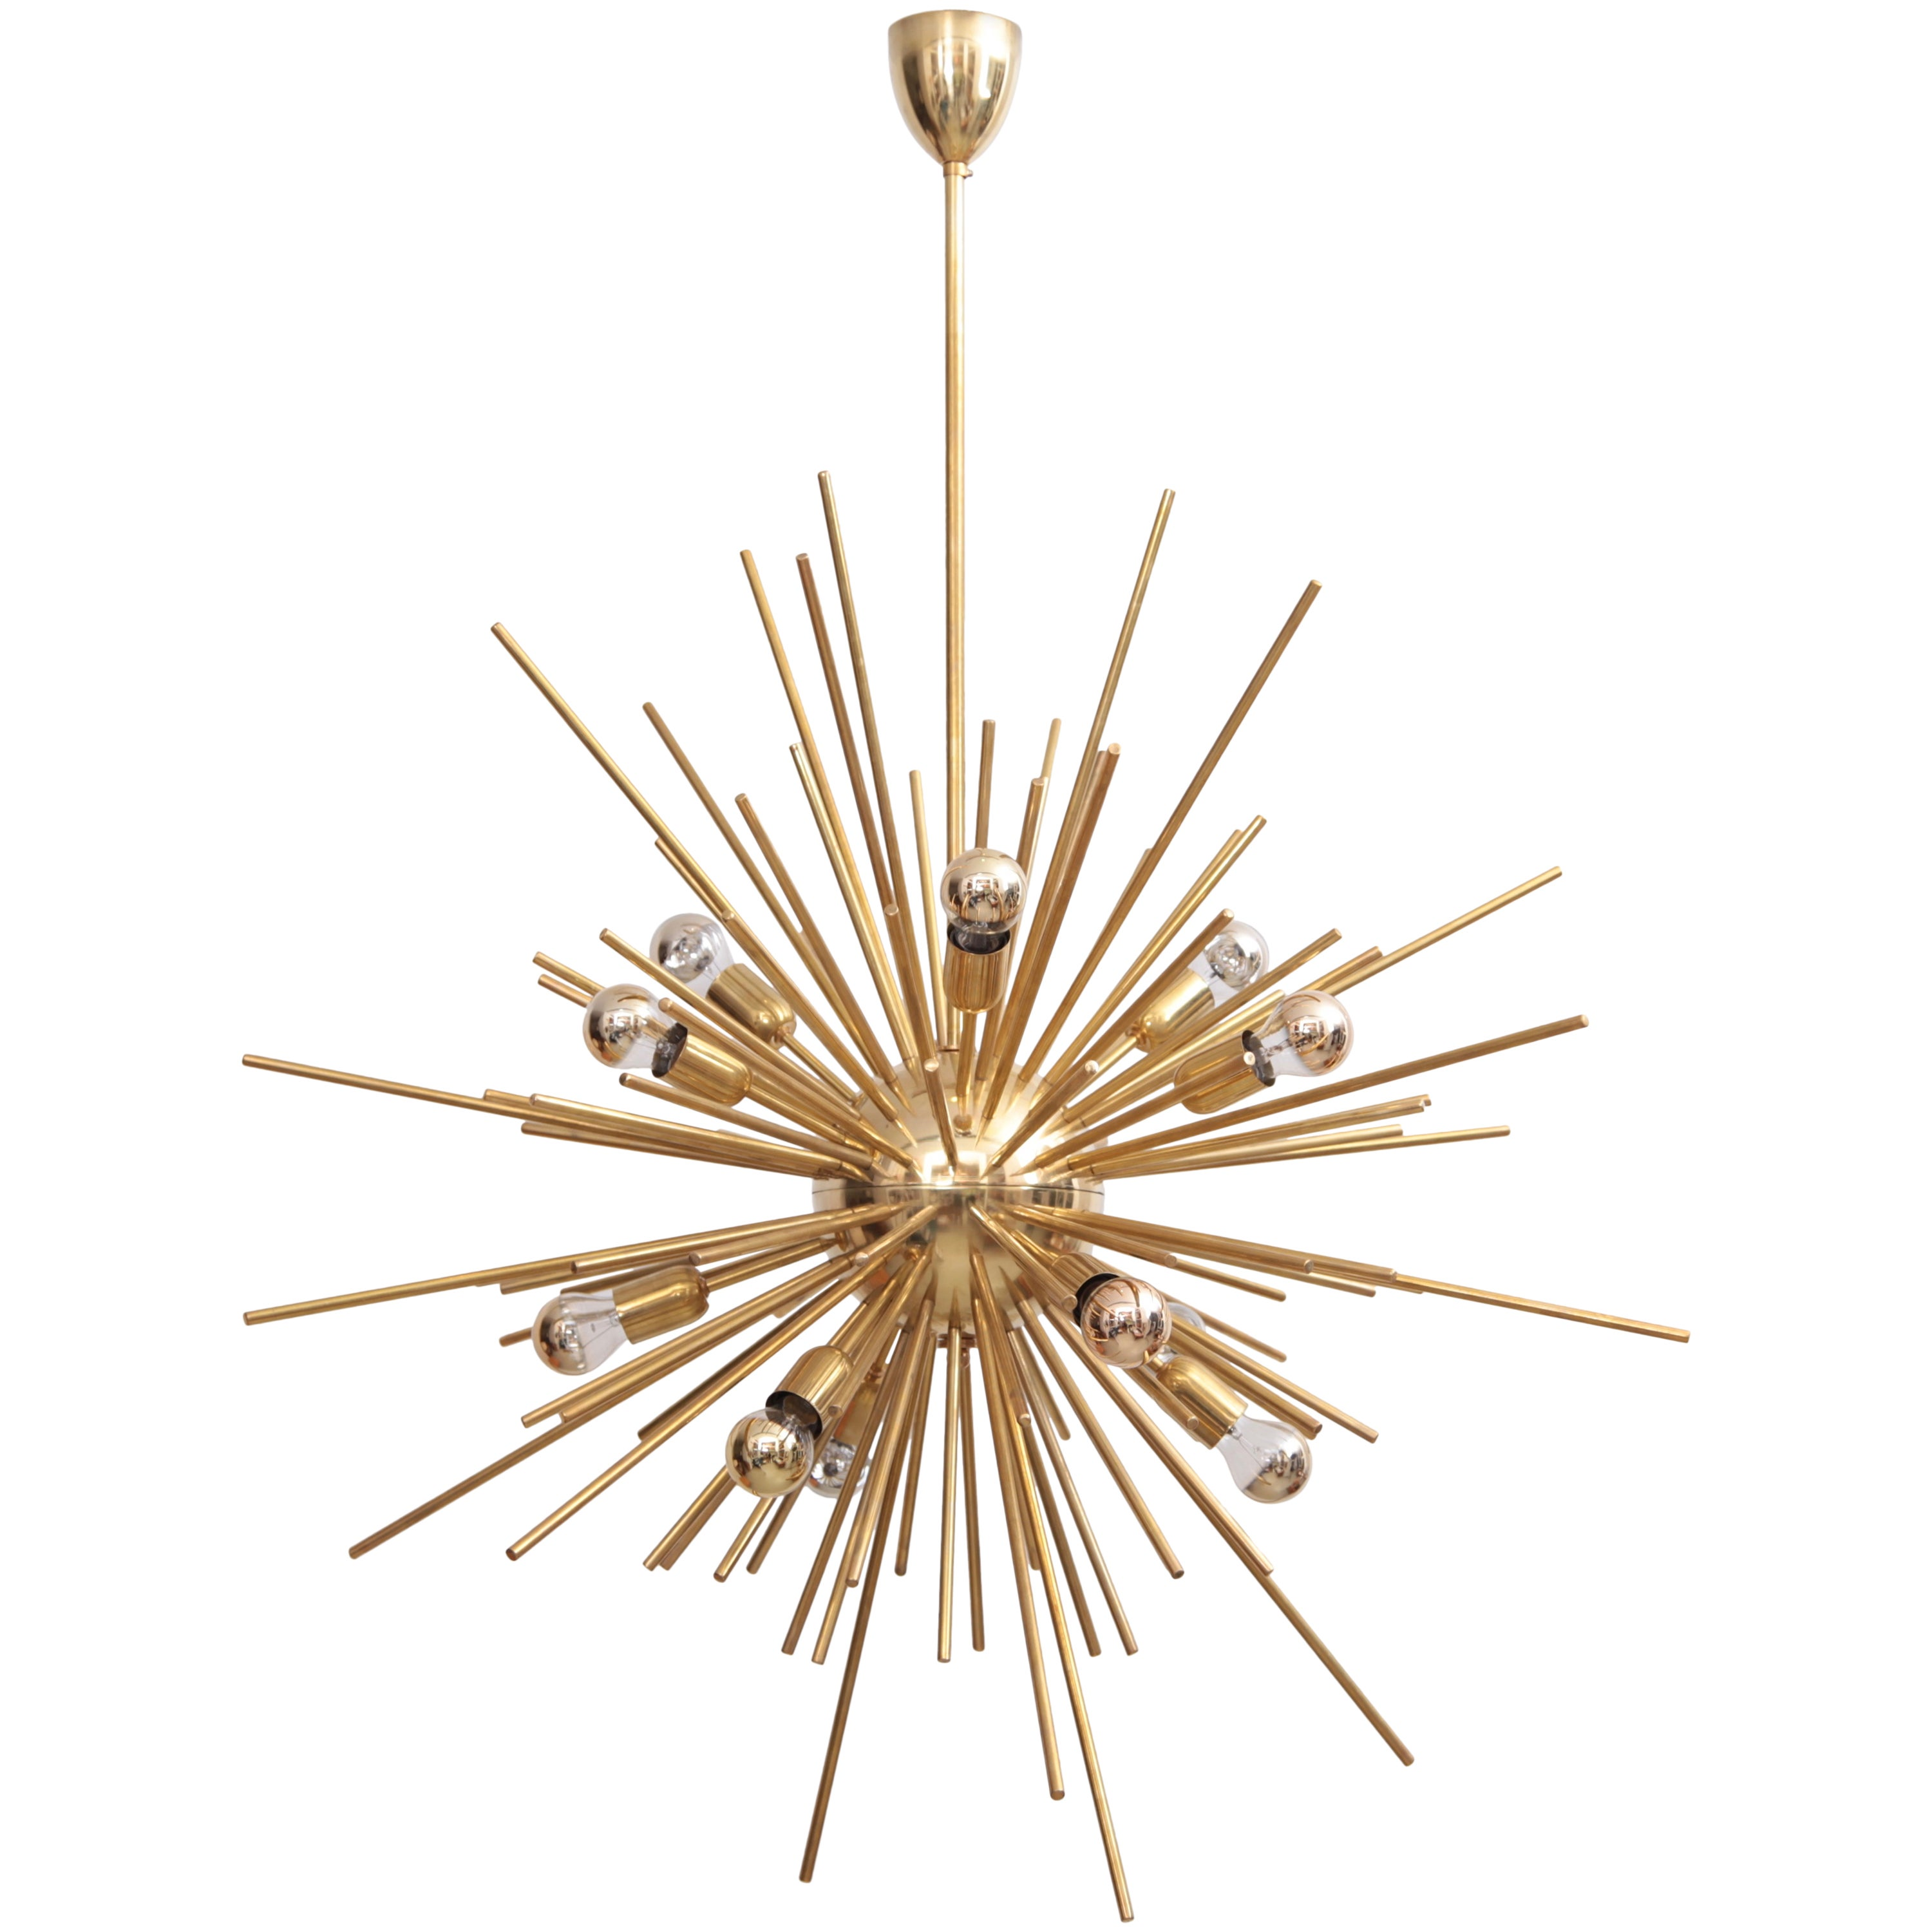 light tidepool item bronze finish uni image cfm inch wide chandelier pendant capitol troy large magnifying glass urchin in shown lighting